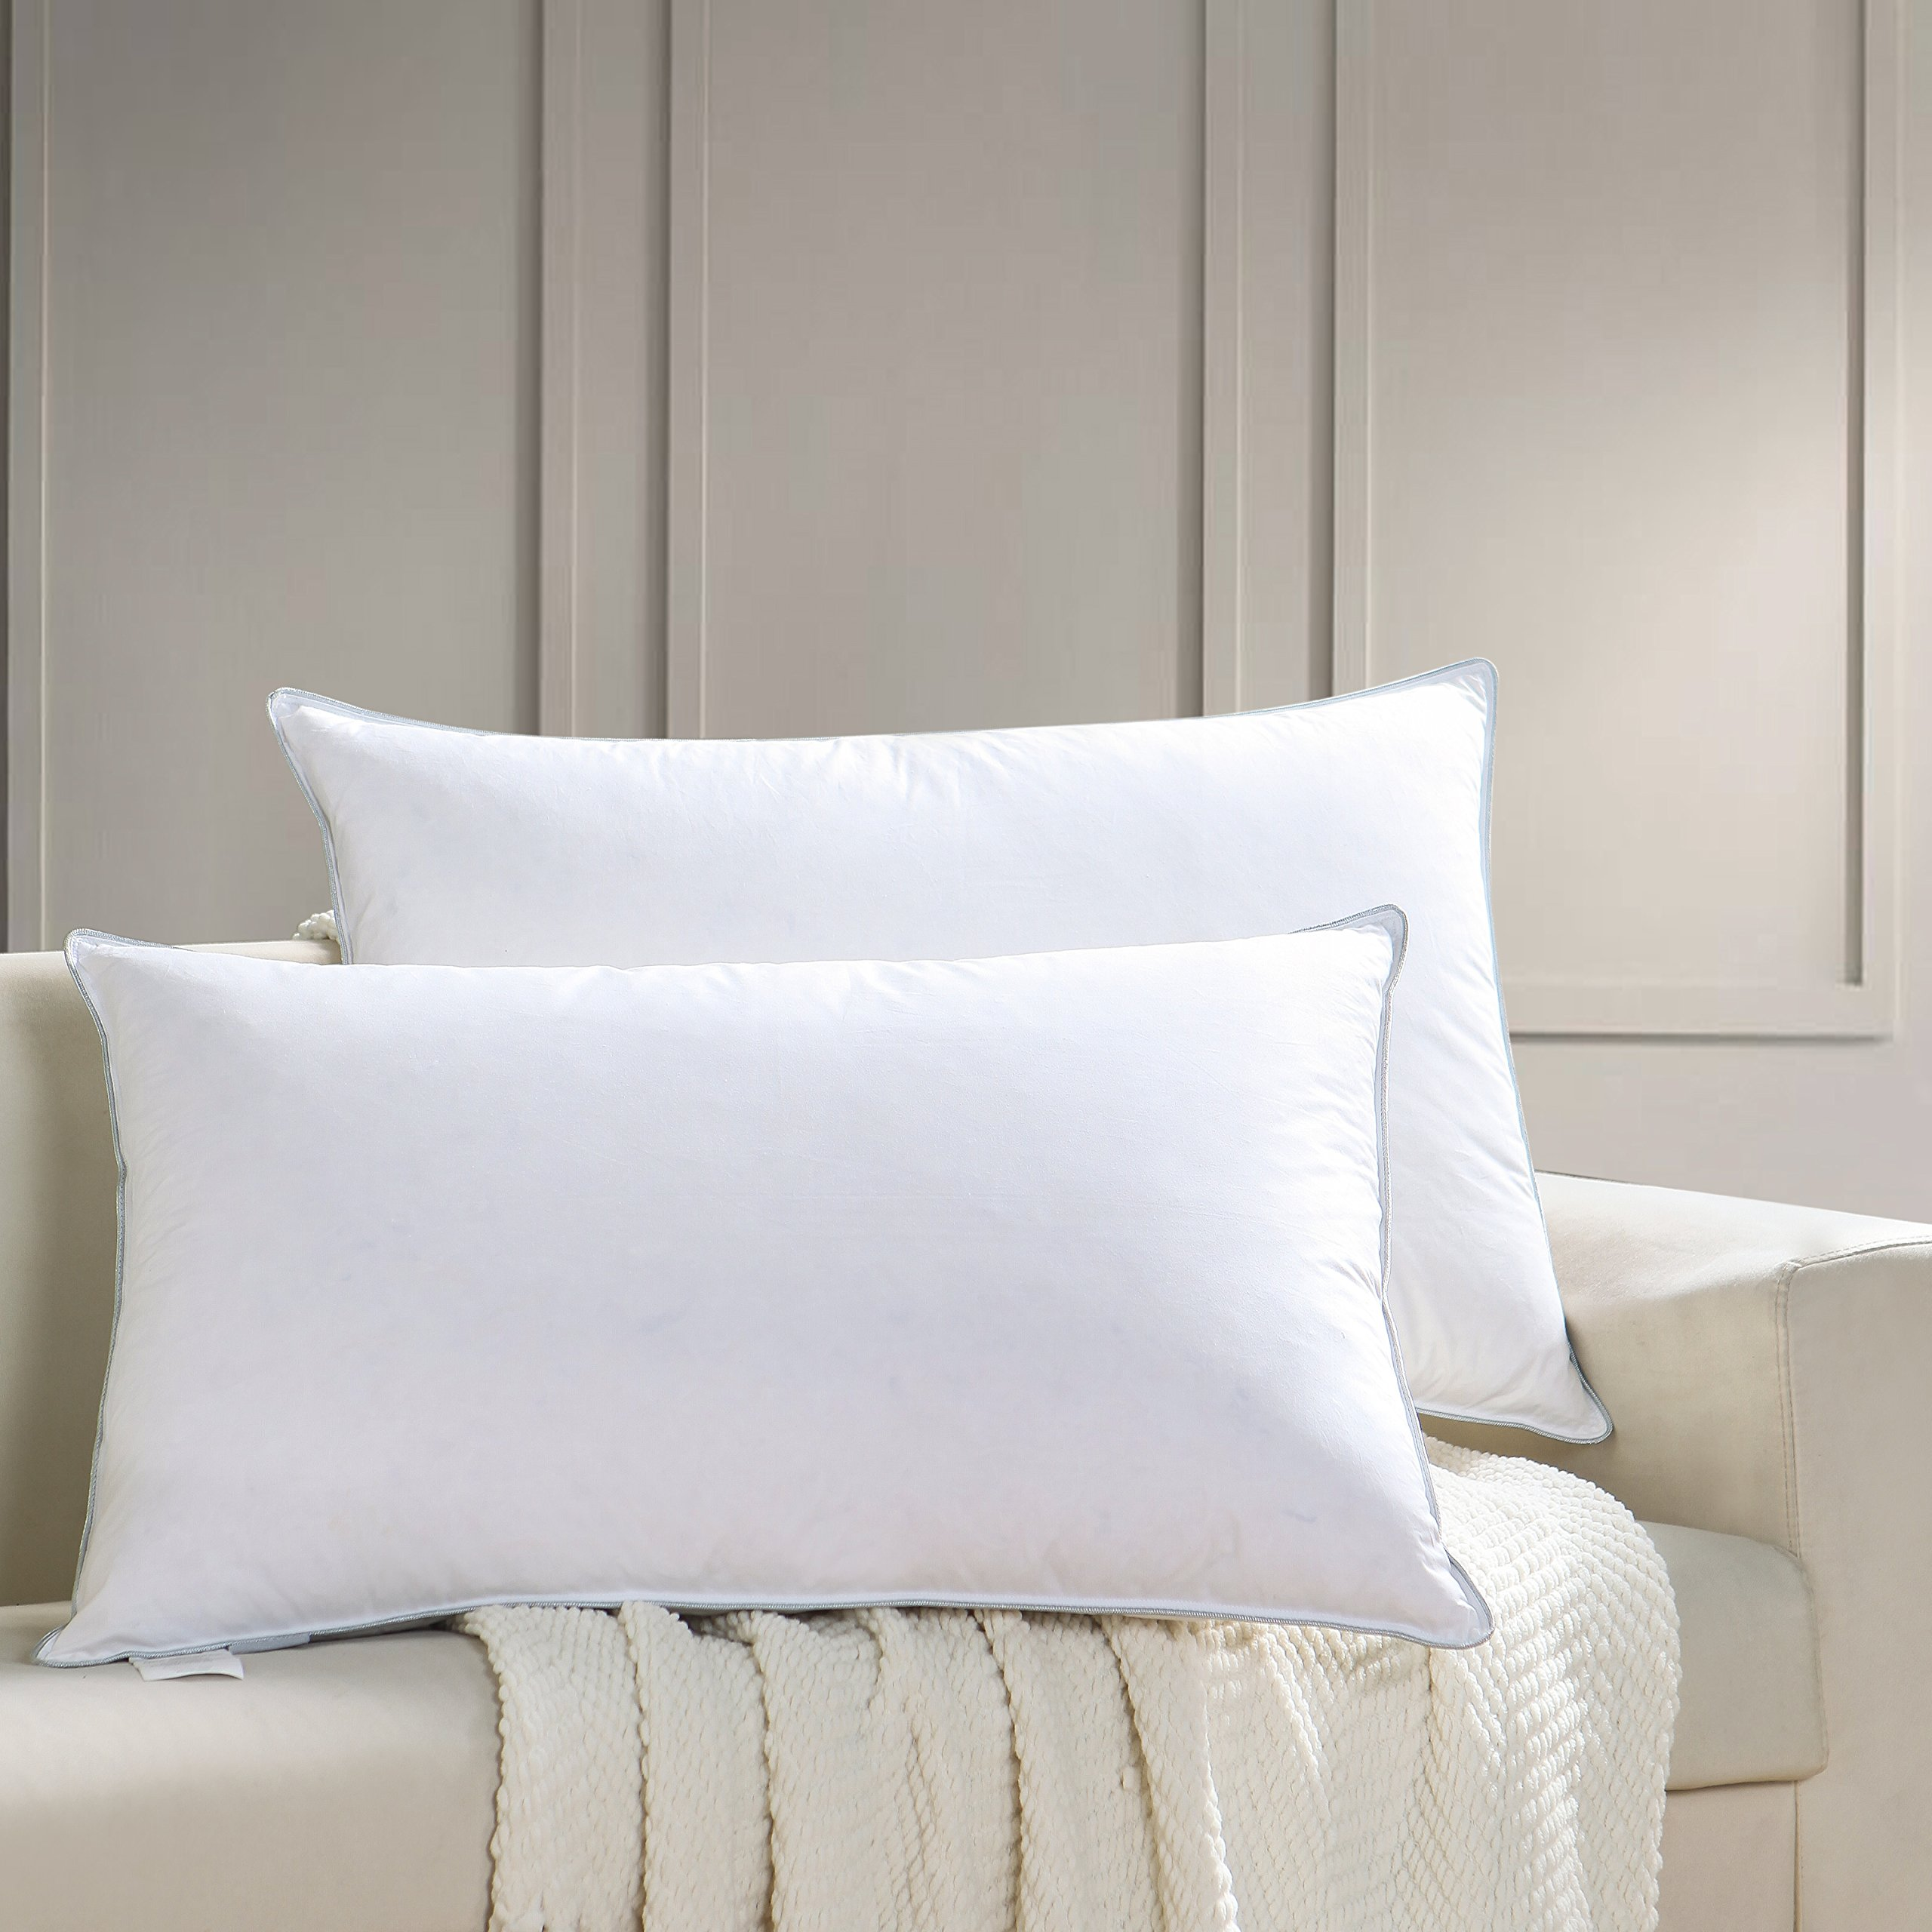 Feather And Down Bed Pillow Queen Size 2 Pack Firm White